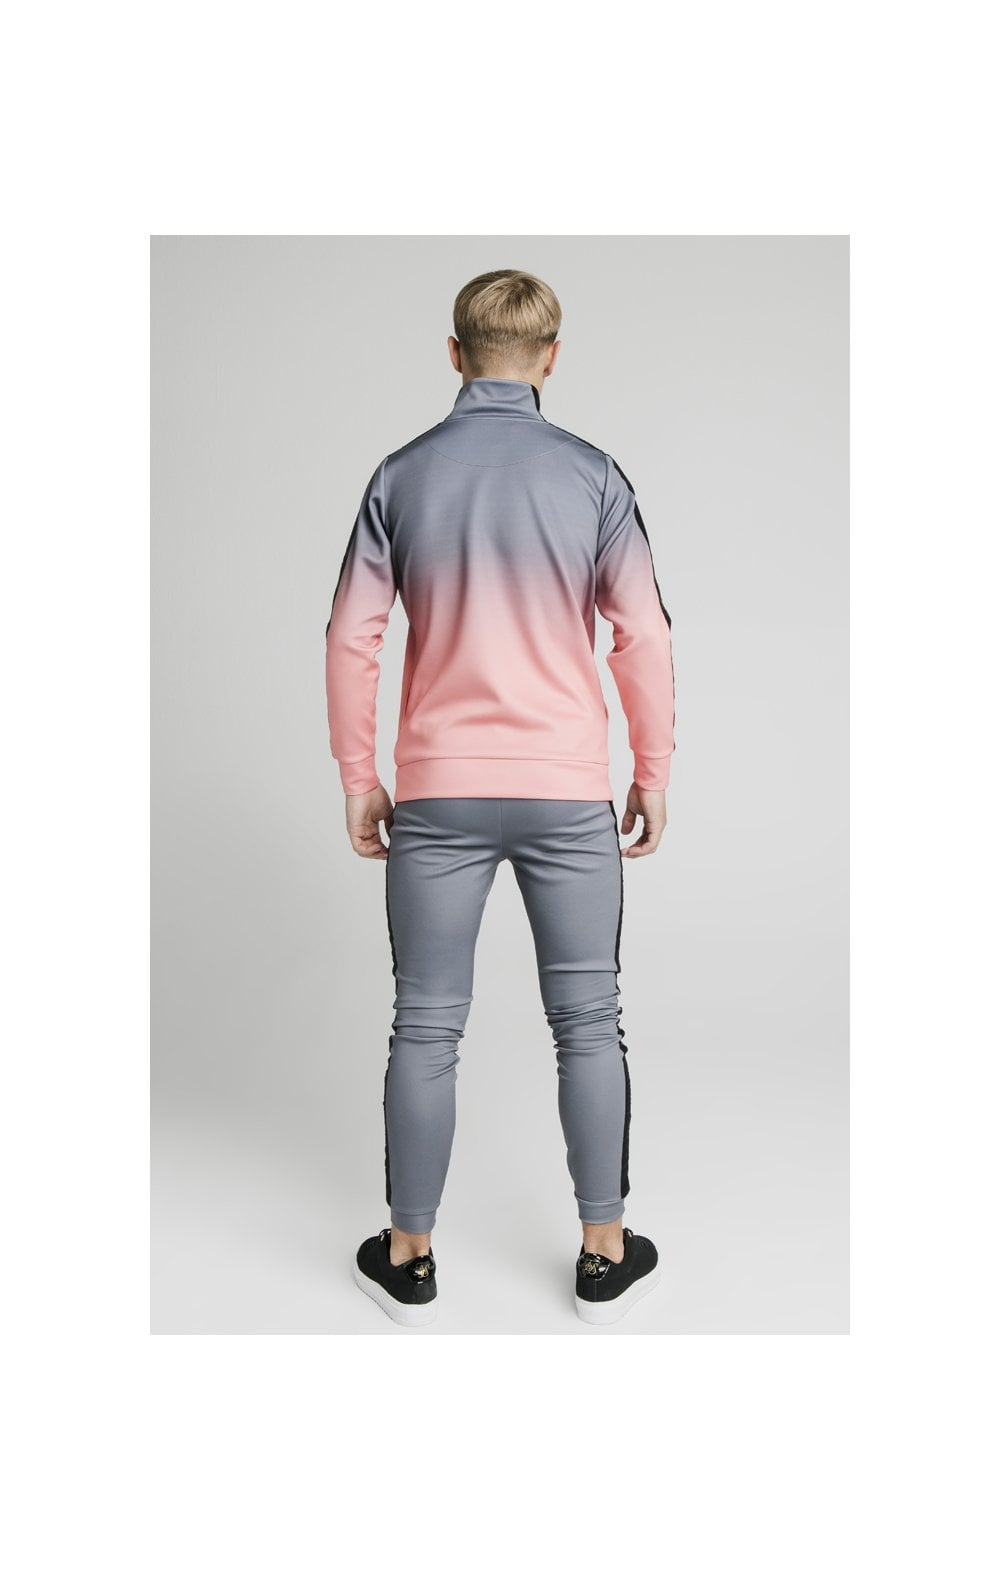 Load image into Gallery viewer, Illusive London Athlete Pants - Grey (6)